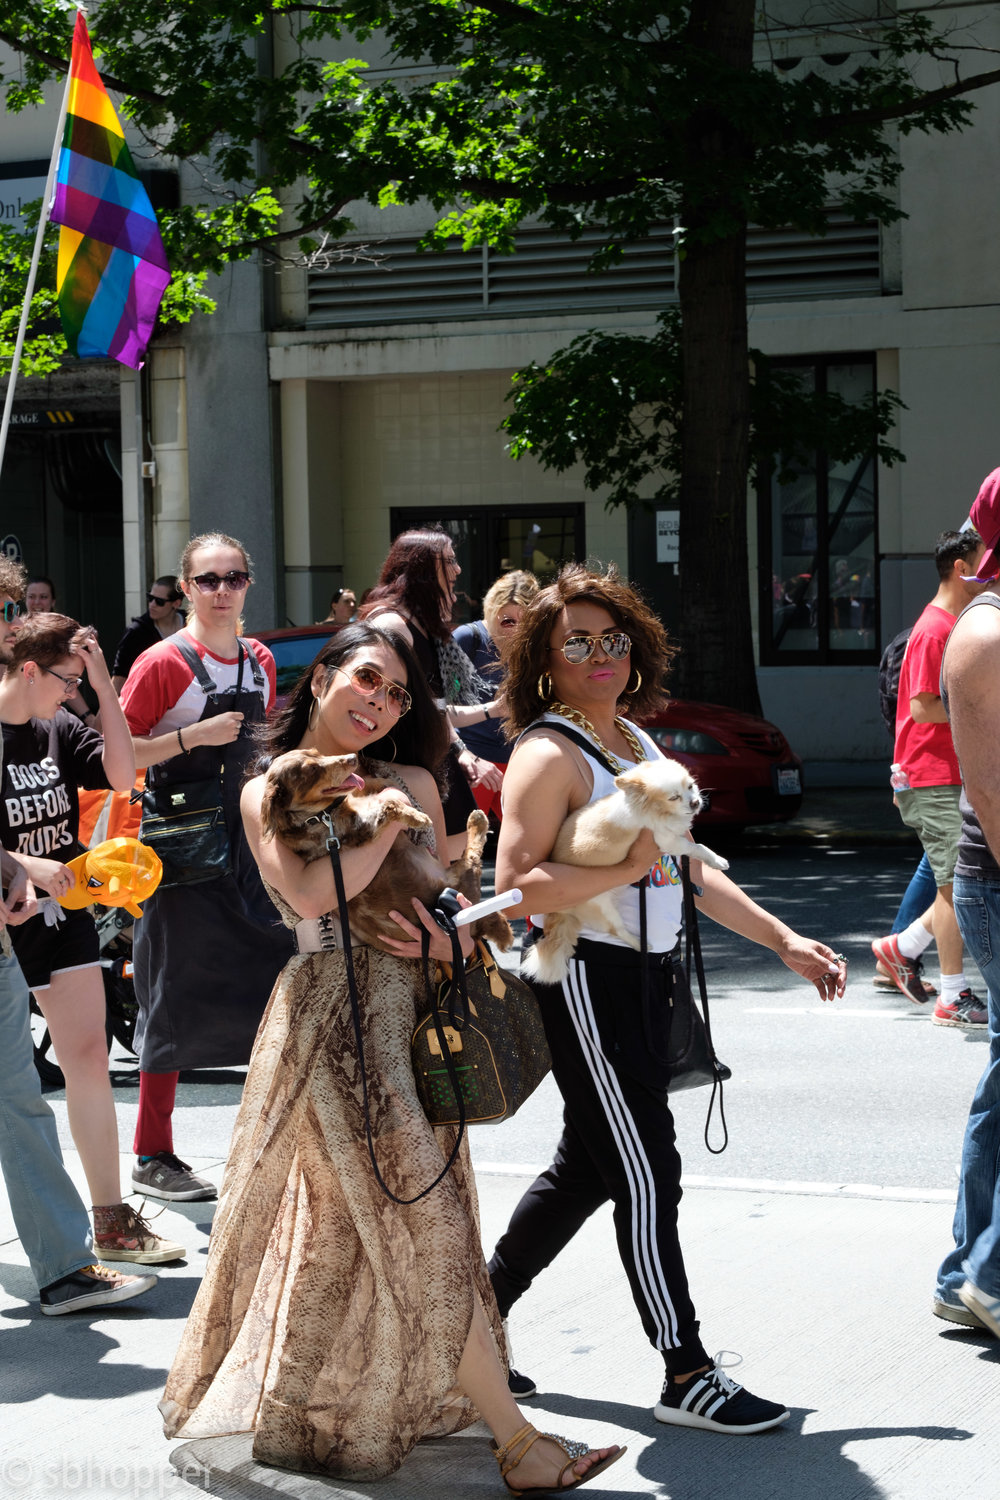 pride-2017-seattle-43-of-52.jpg